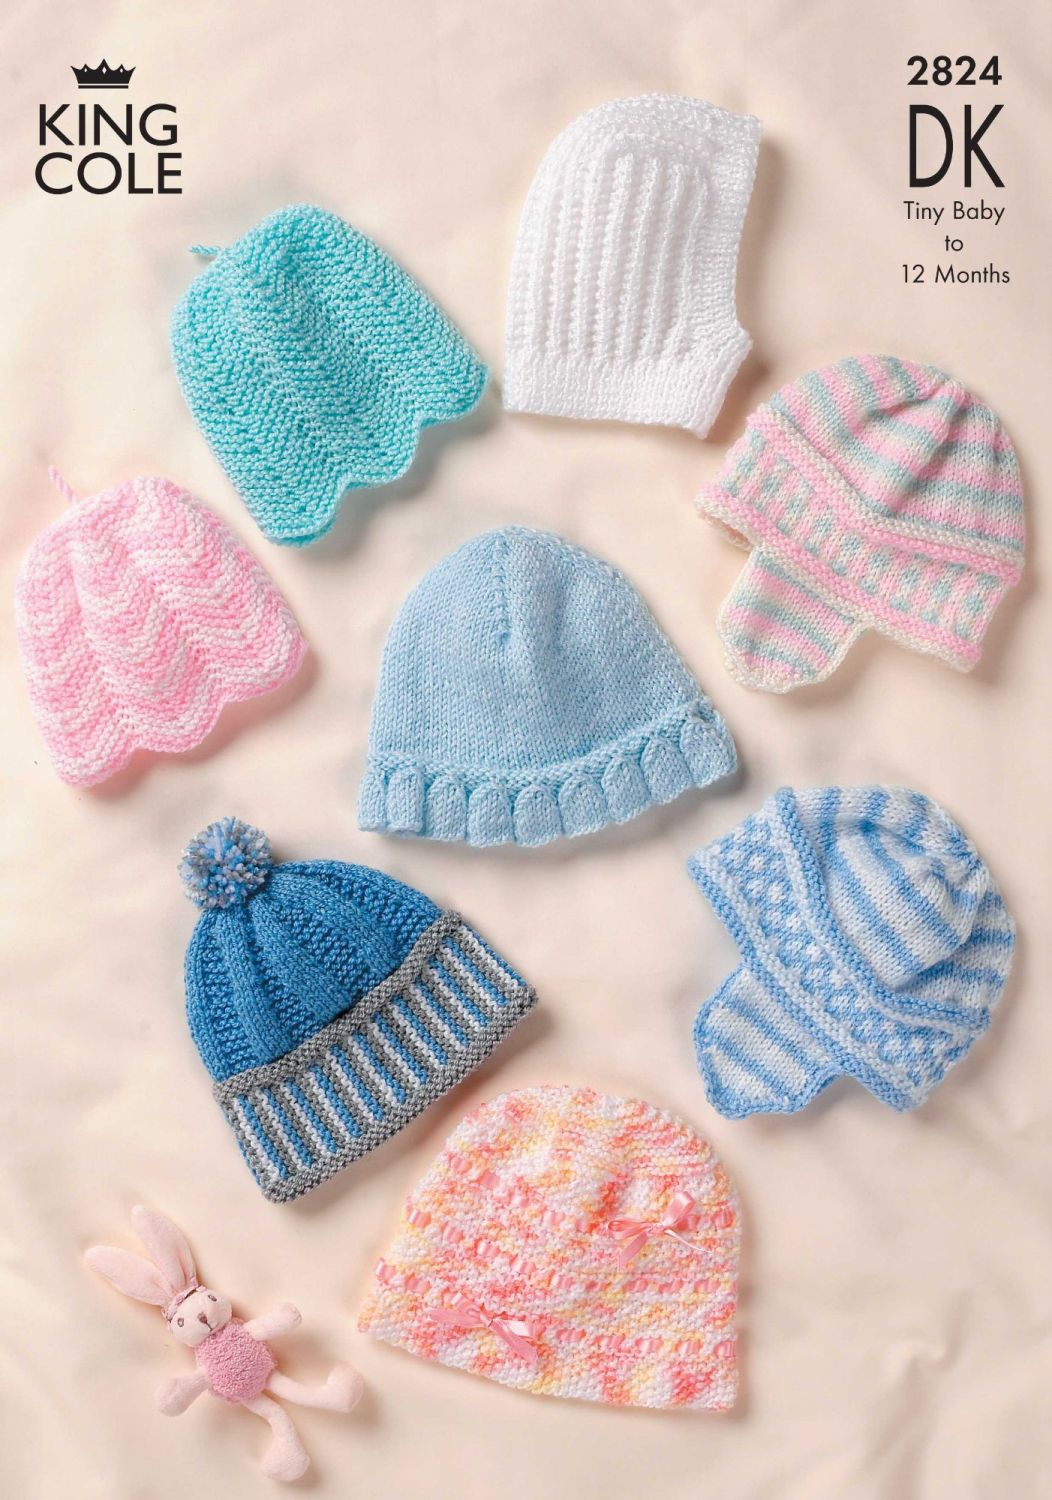 2824 Knitting Pattern DK - Babies Hats Tiny to 12 Months